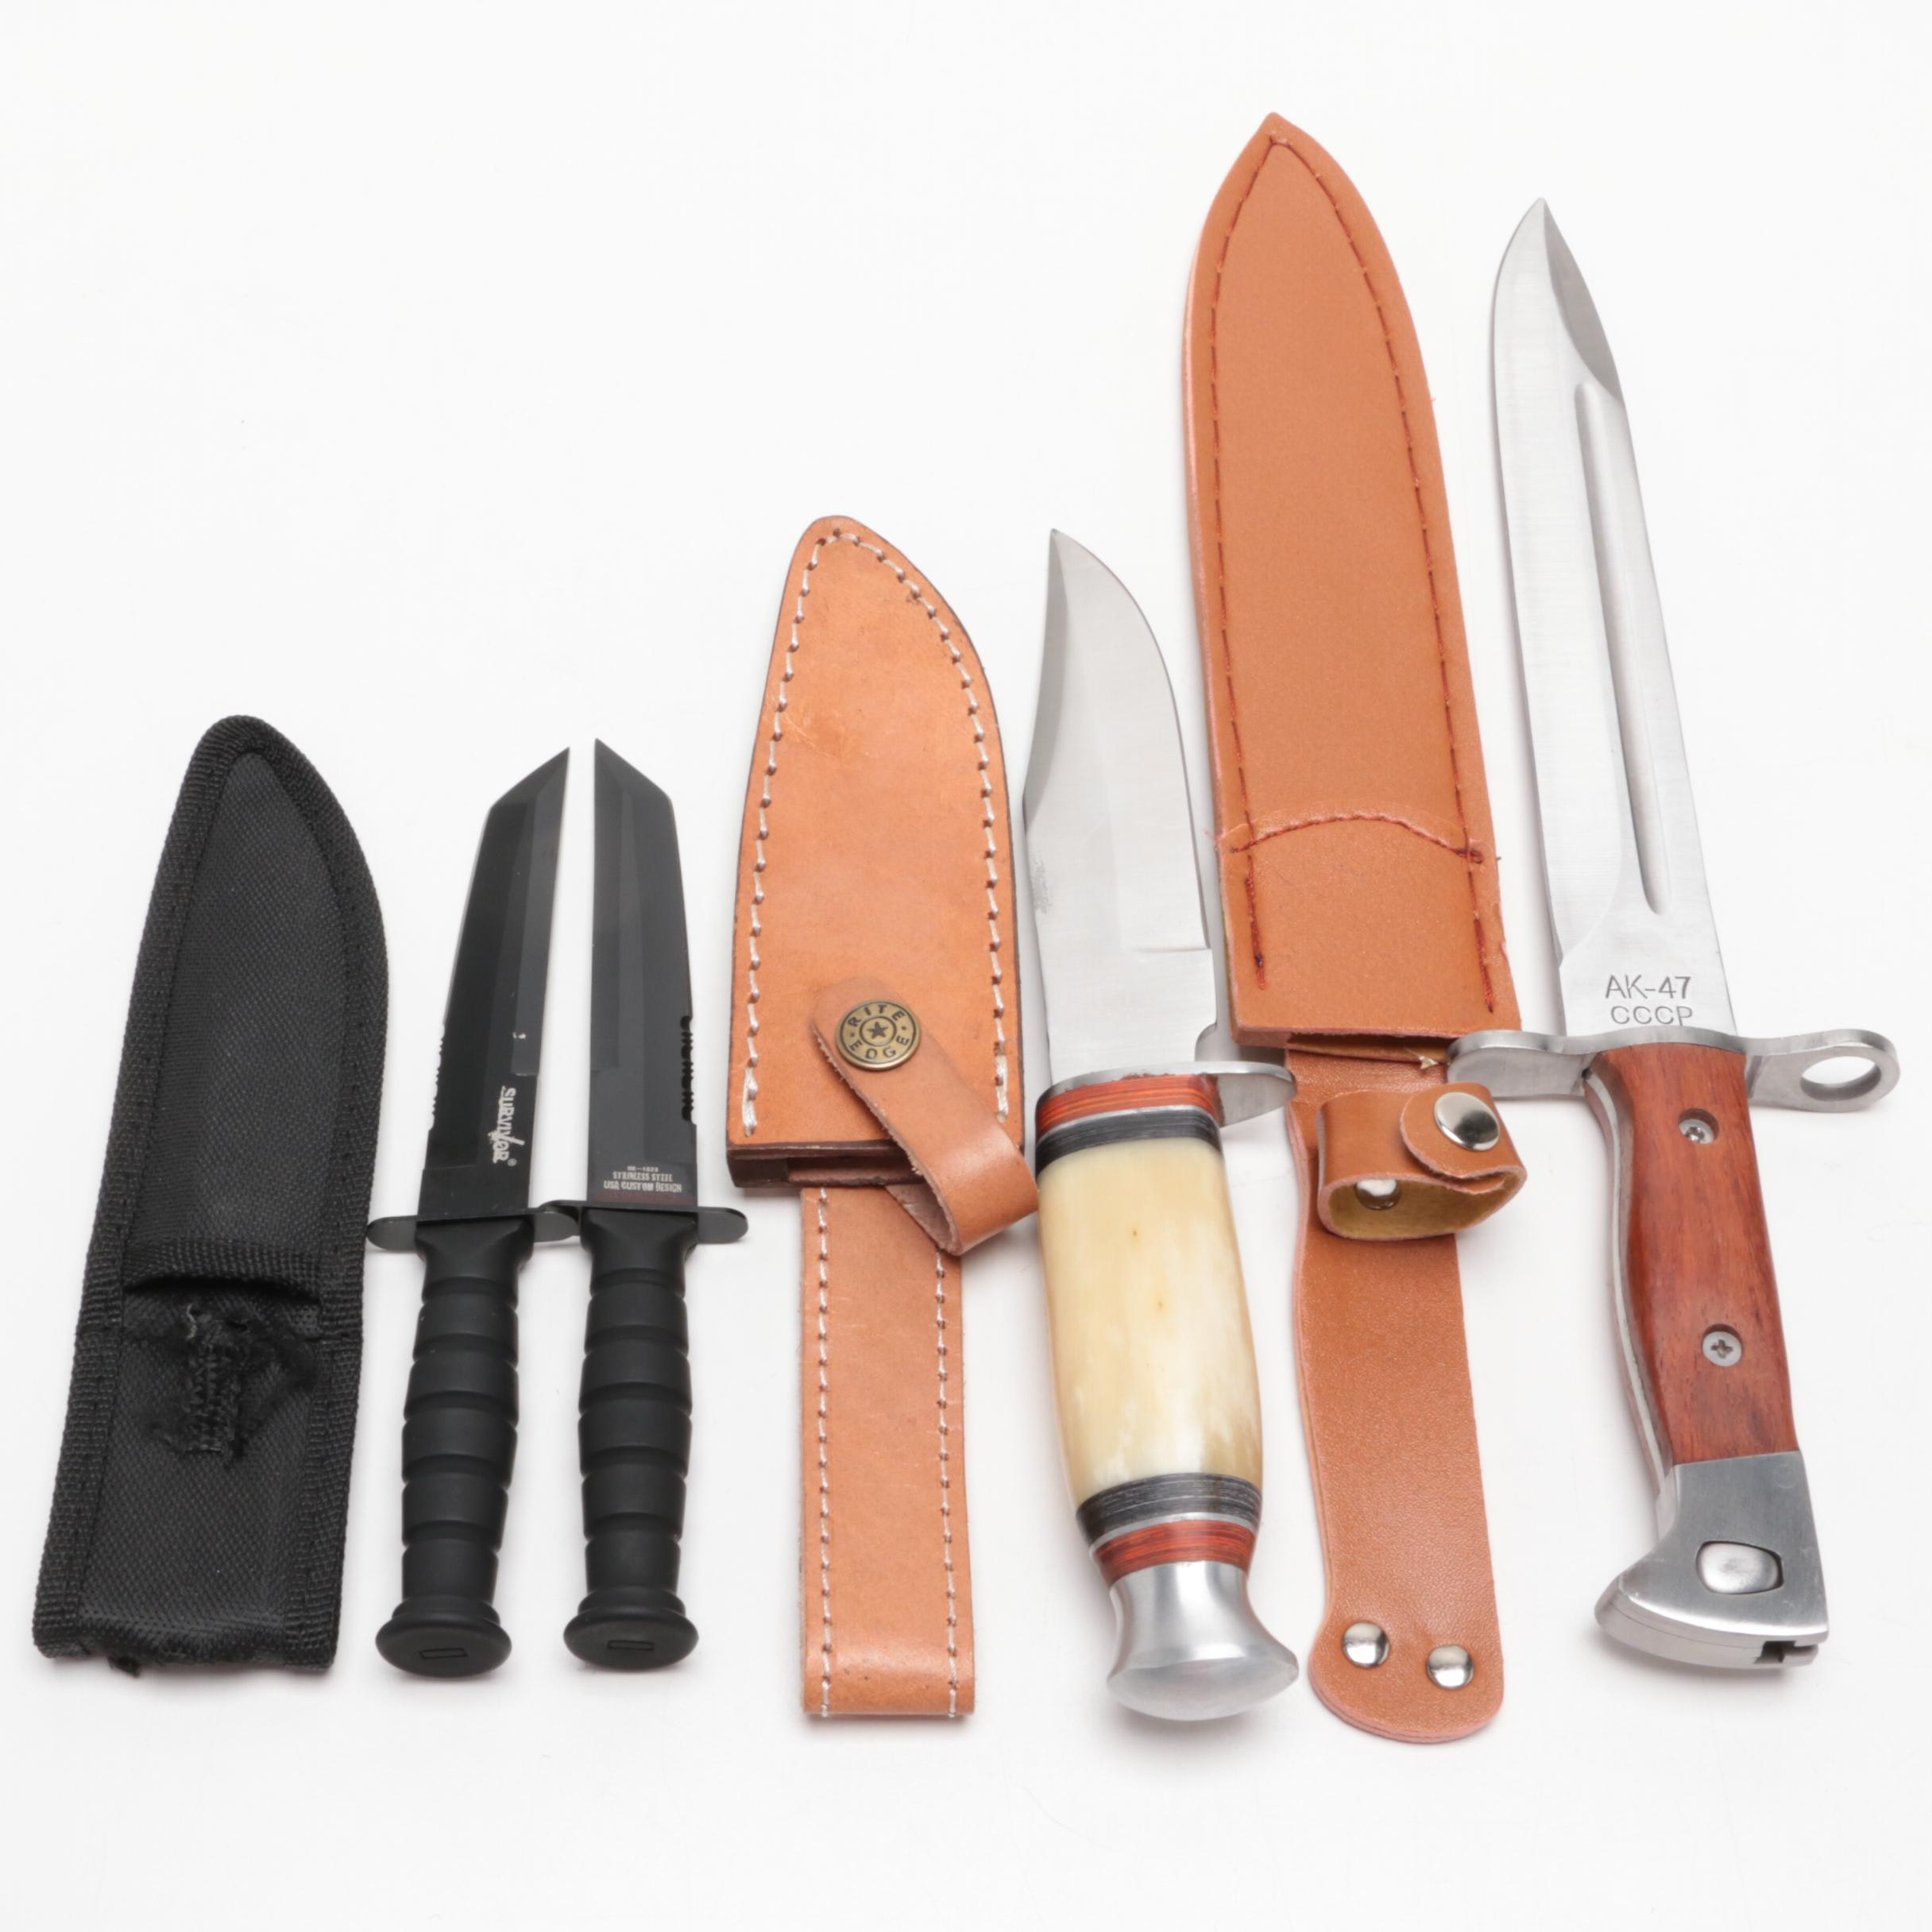 Group of Hunting and Military Style Knives